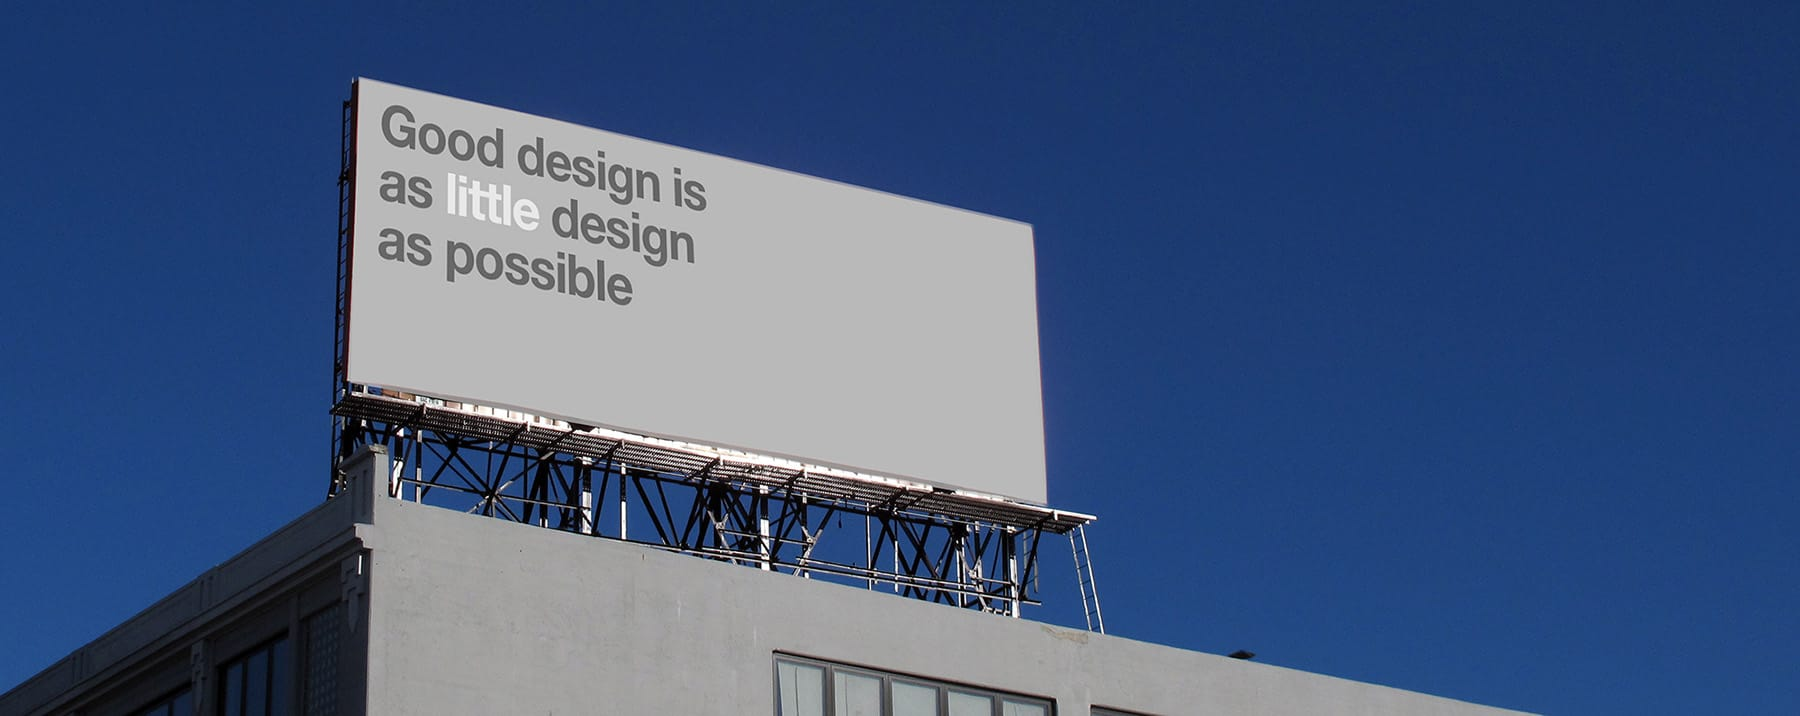 Good design is as little as possible.